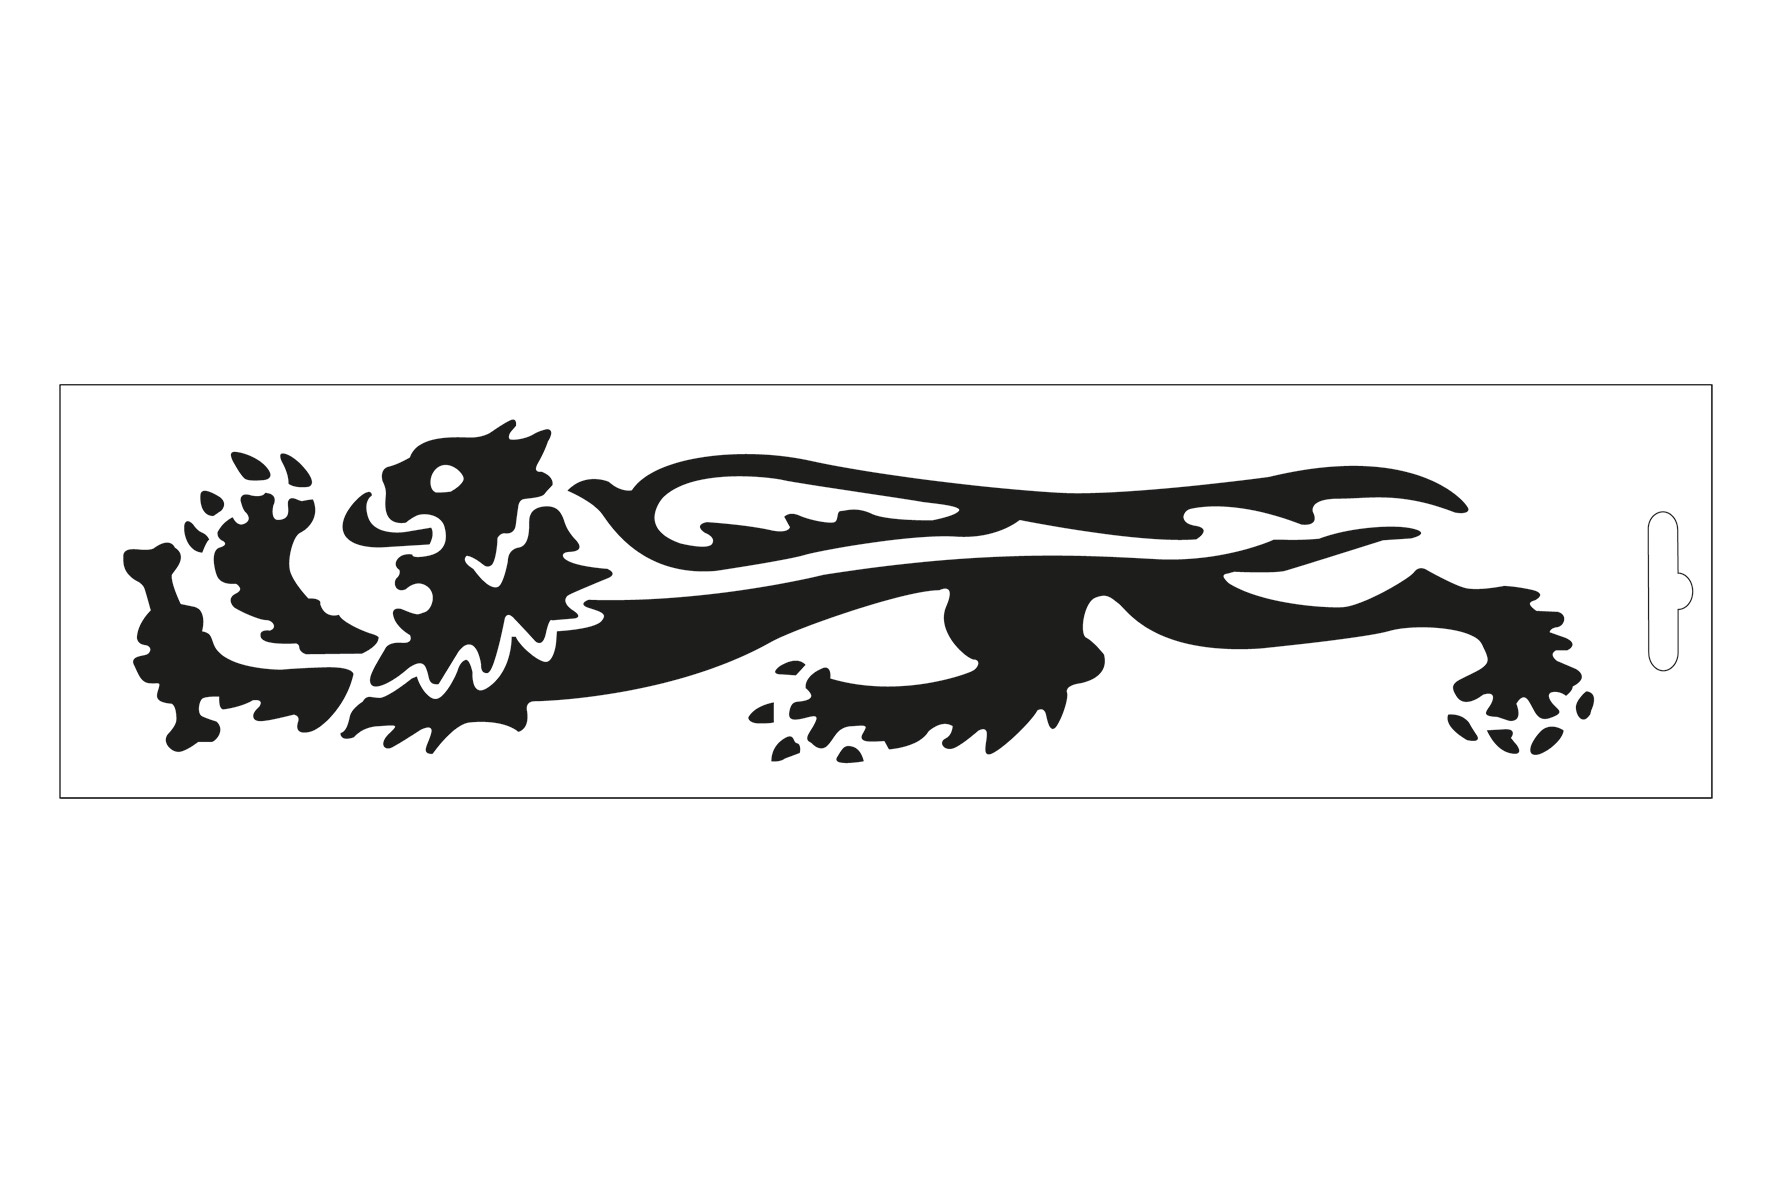 PRE-SPACED MALOSSI STICKER BLACK LION - LEFT L.23 cm H.5,3 cm